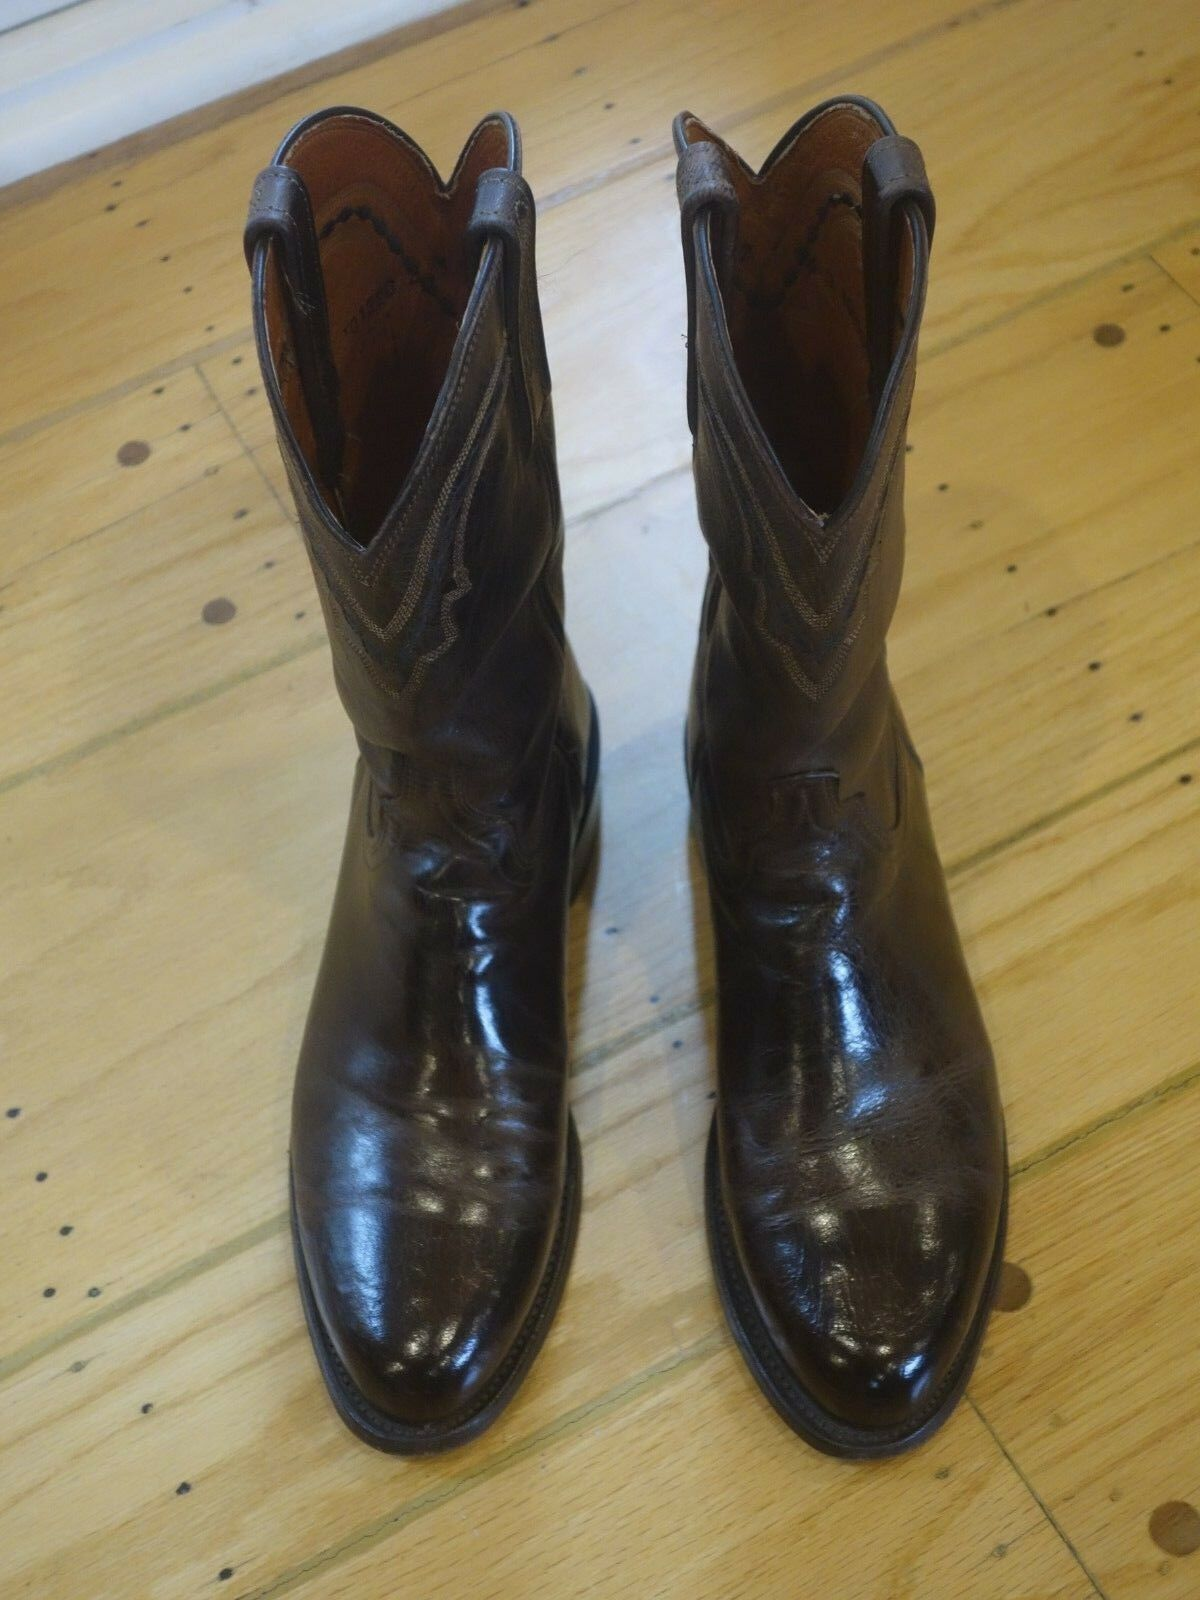 Used Mens Lucchese Chocolate MAD DOG Goat Leather Dimensione 7.5D stivali